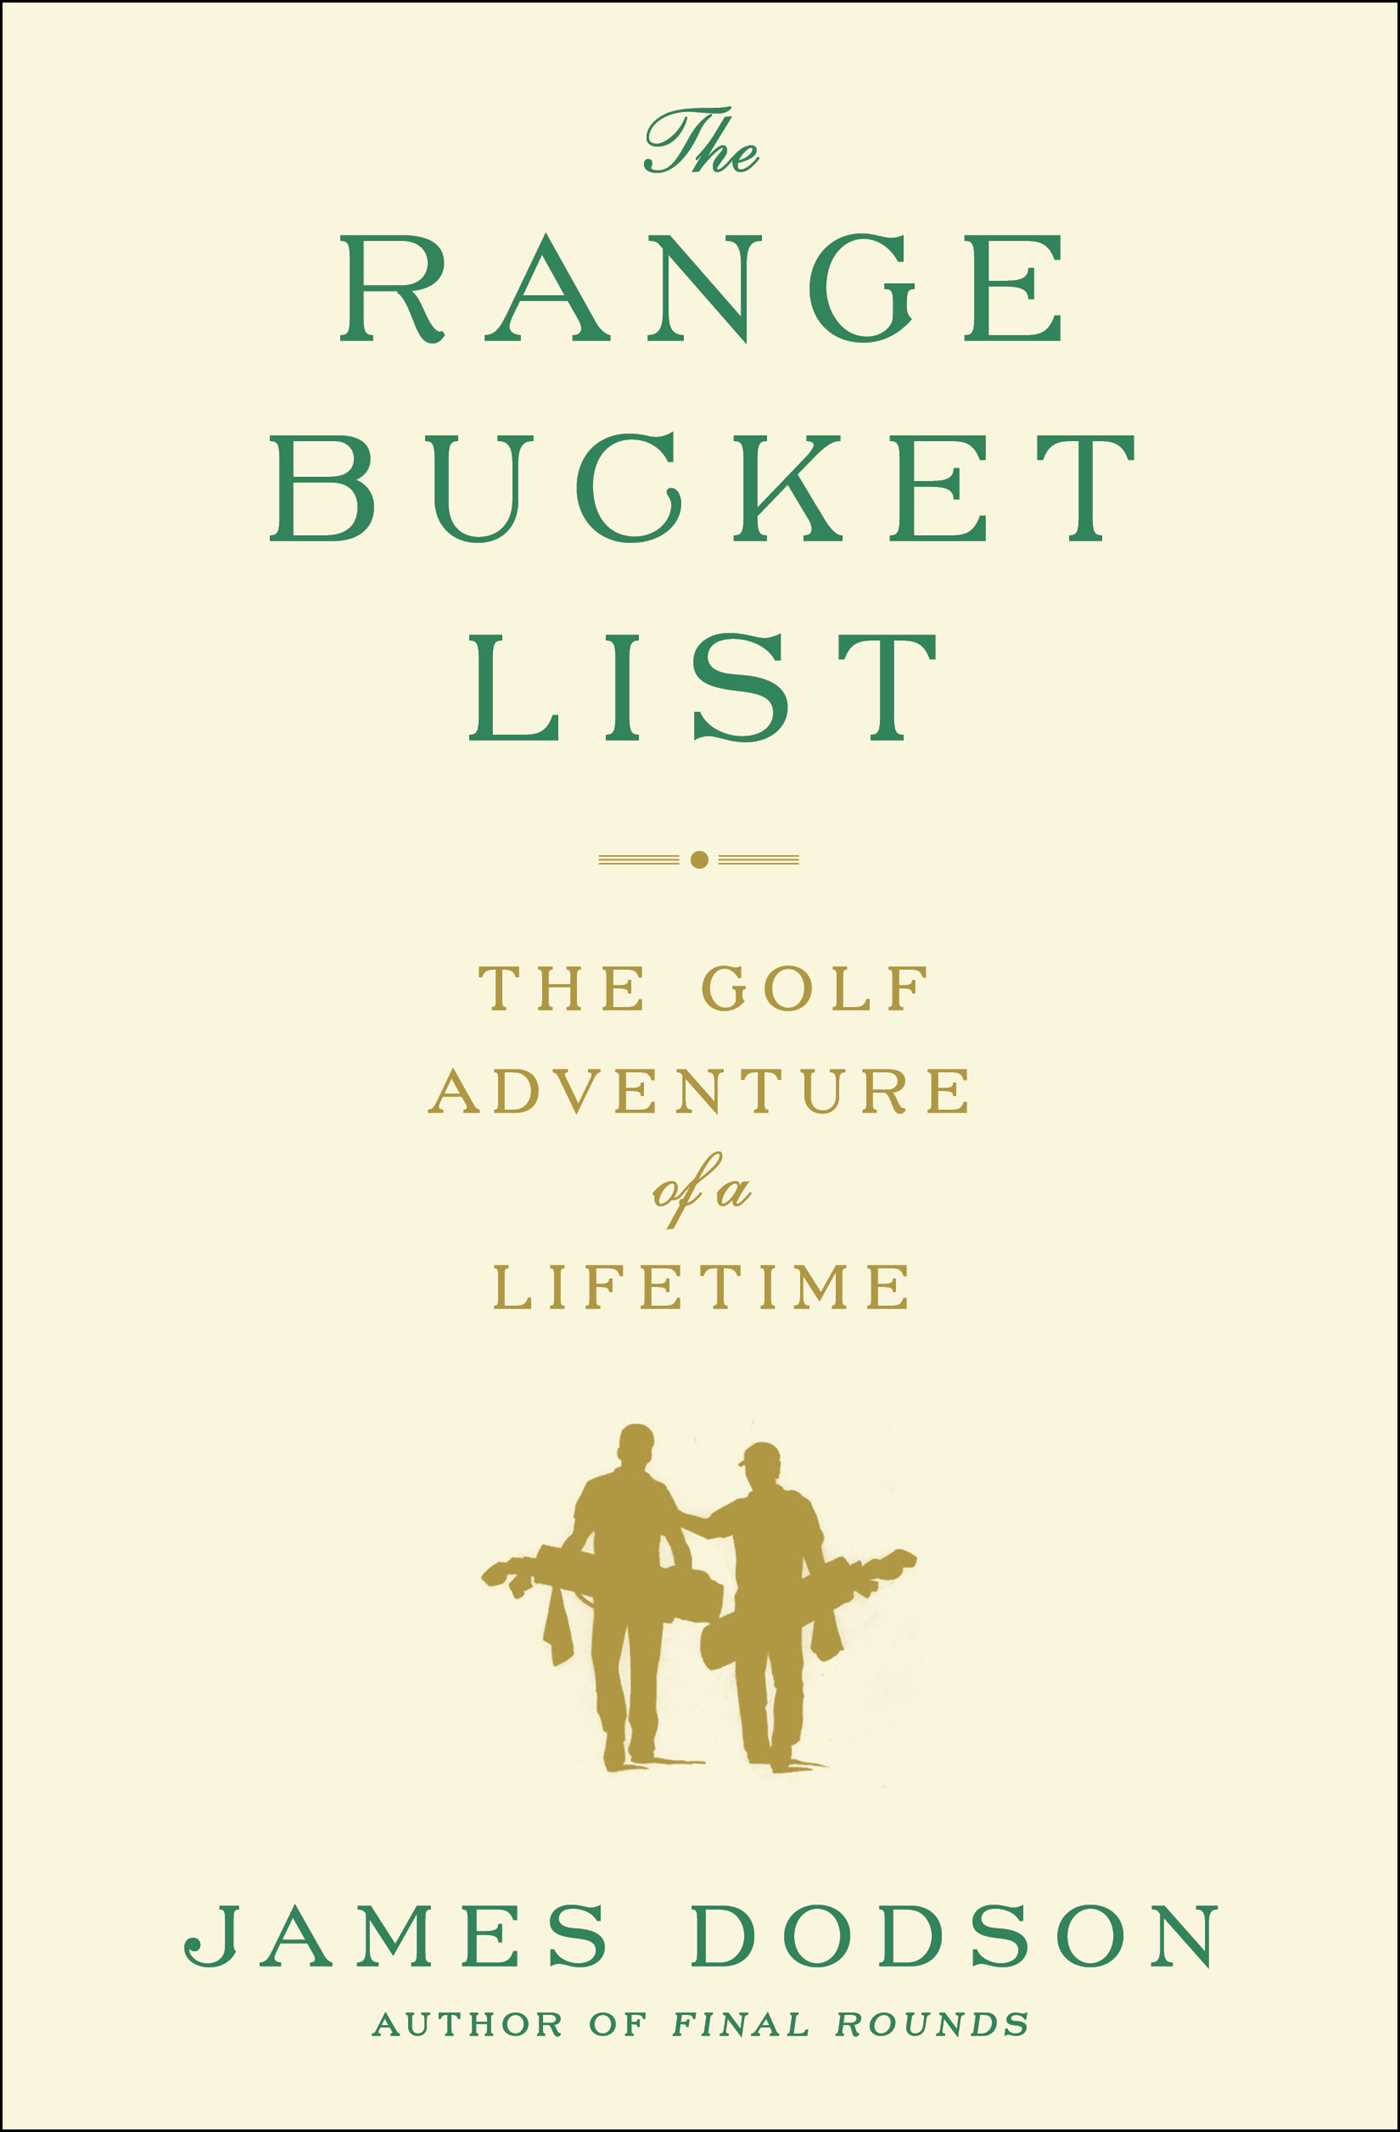 The Range Bucket List